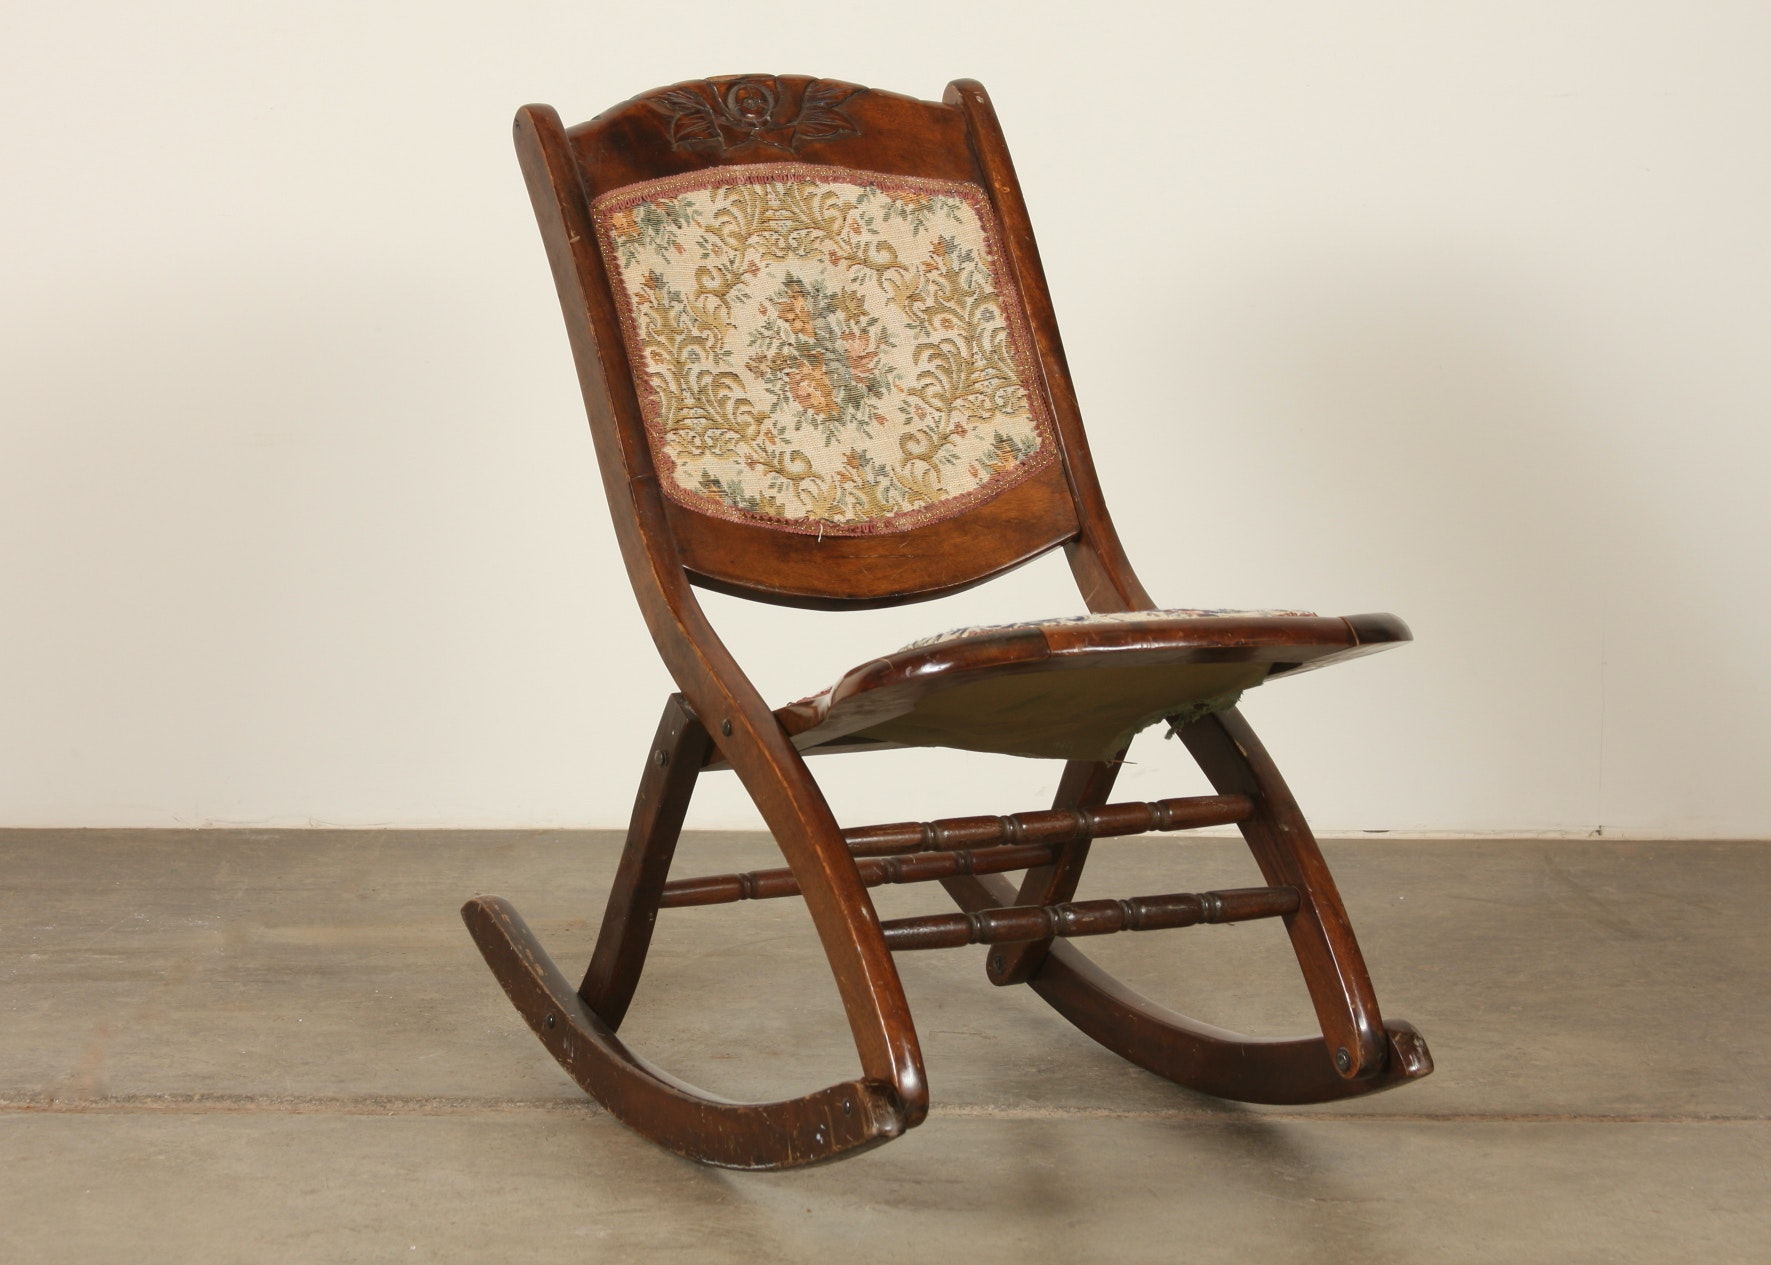 Victorian era Folding Rocking Chair EBTH